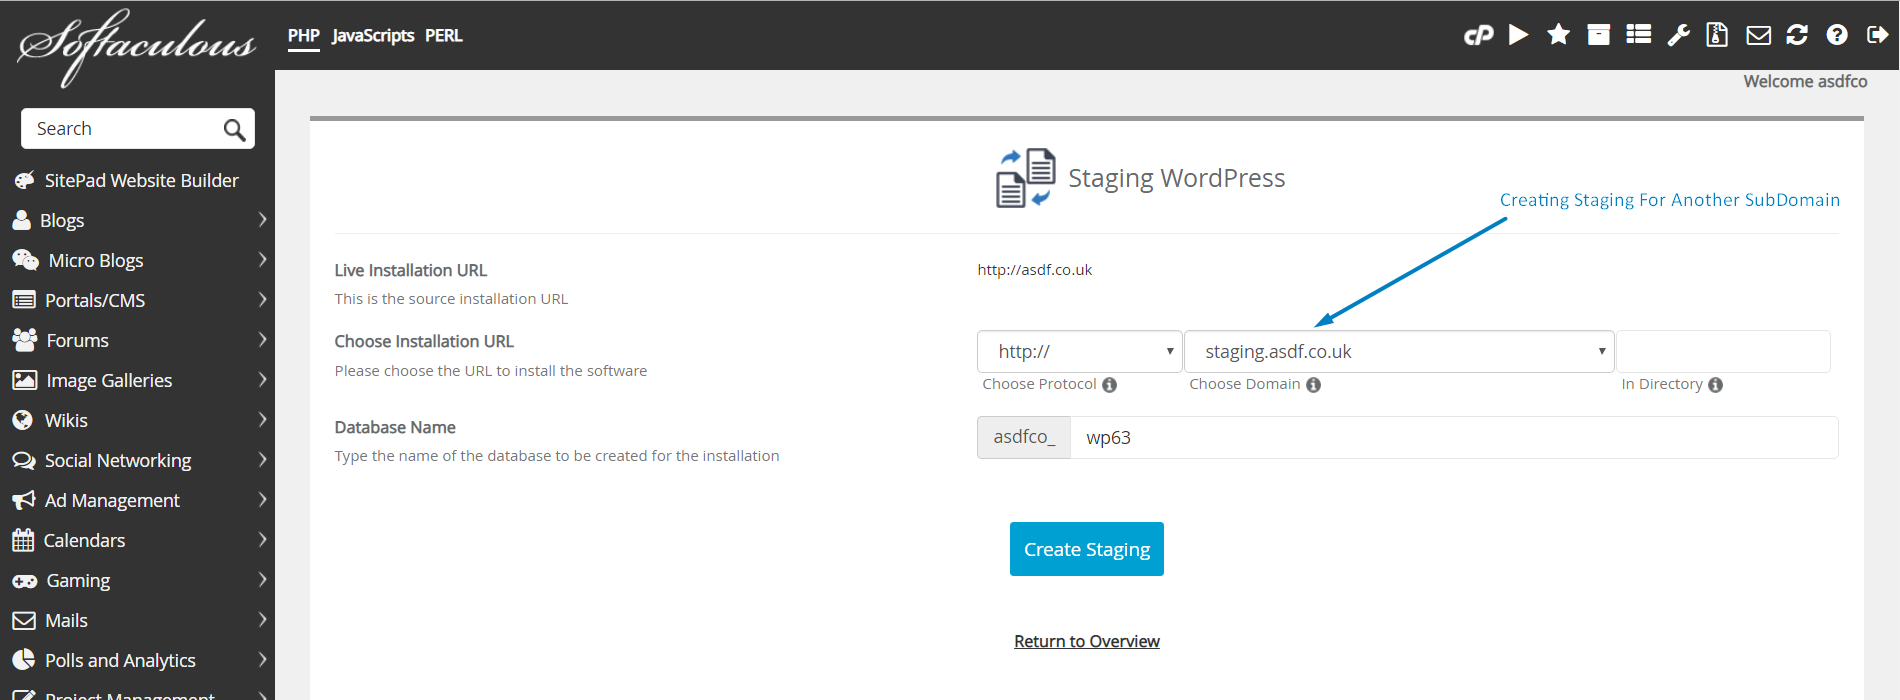 How to Create Staging Using Softaculous in cPanel? | SeekaHost